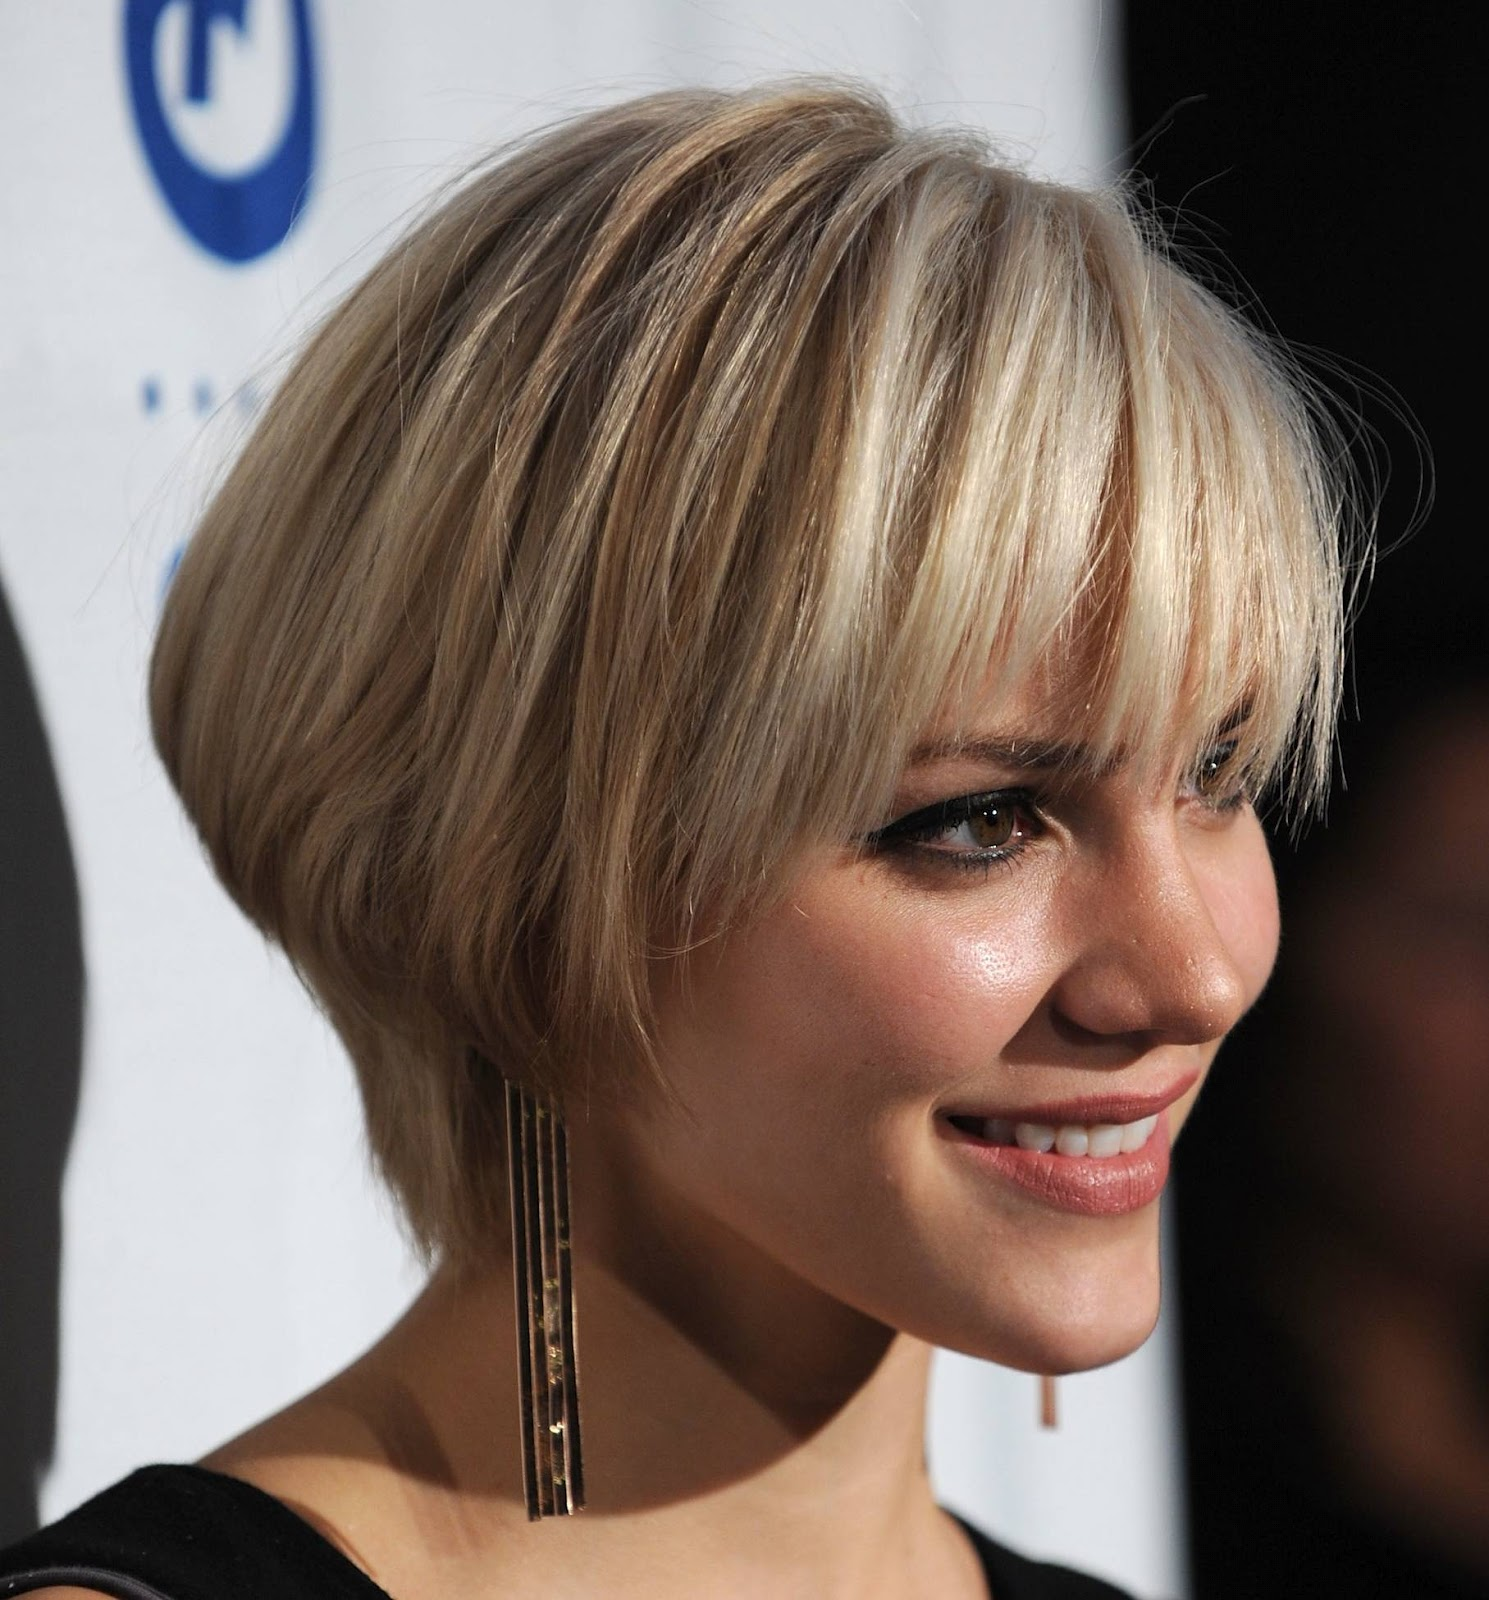 Cute Short Blonde Bob Hairstyles for Womens from Katharine McPhee Hairstyle